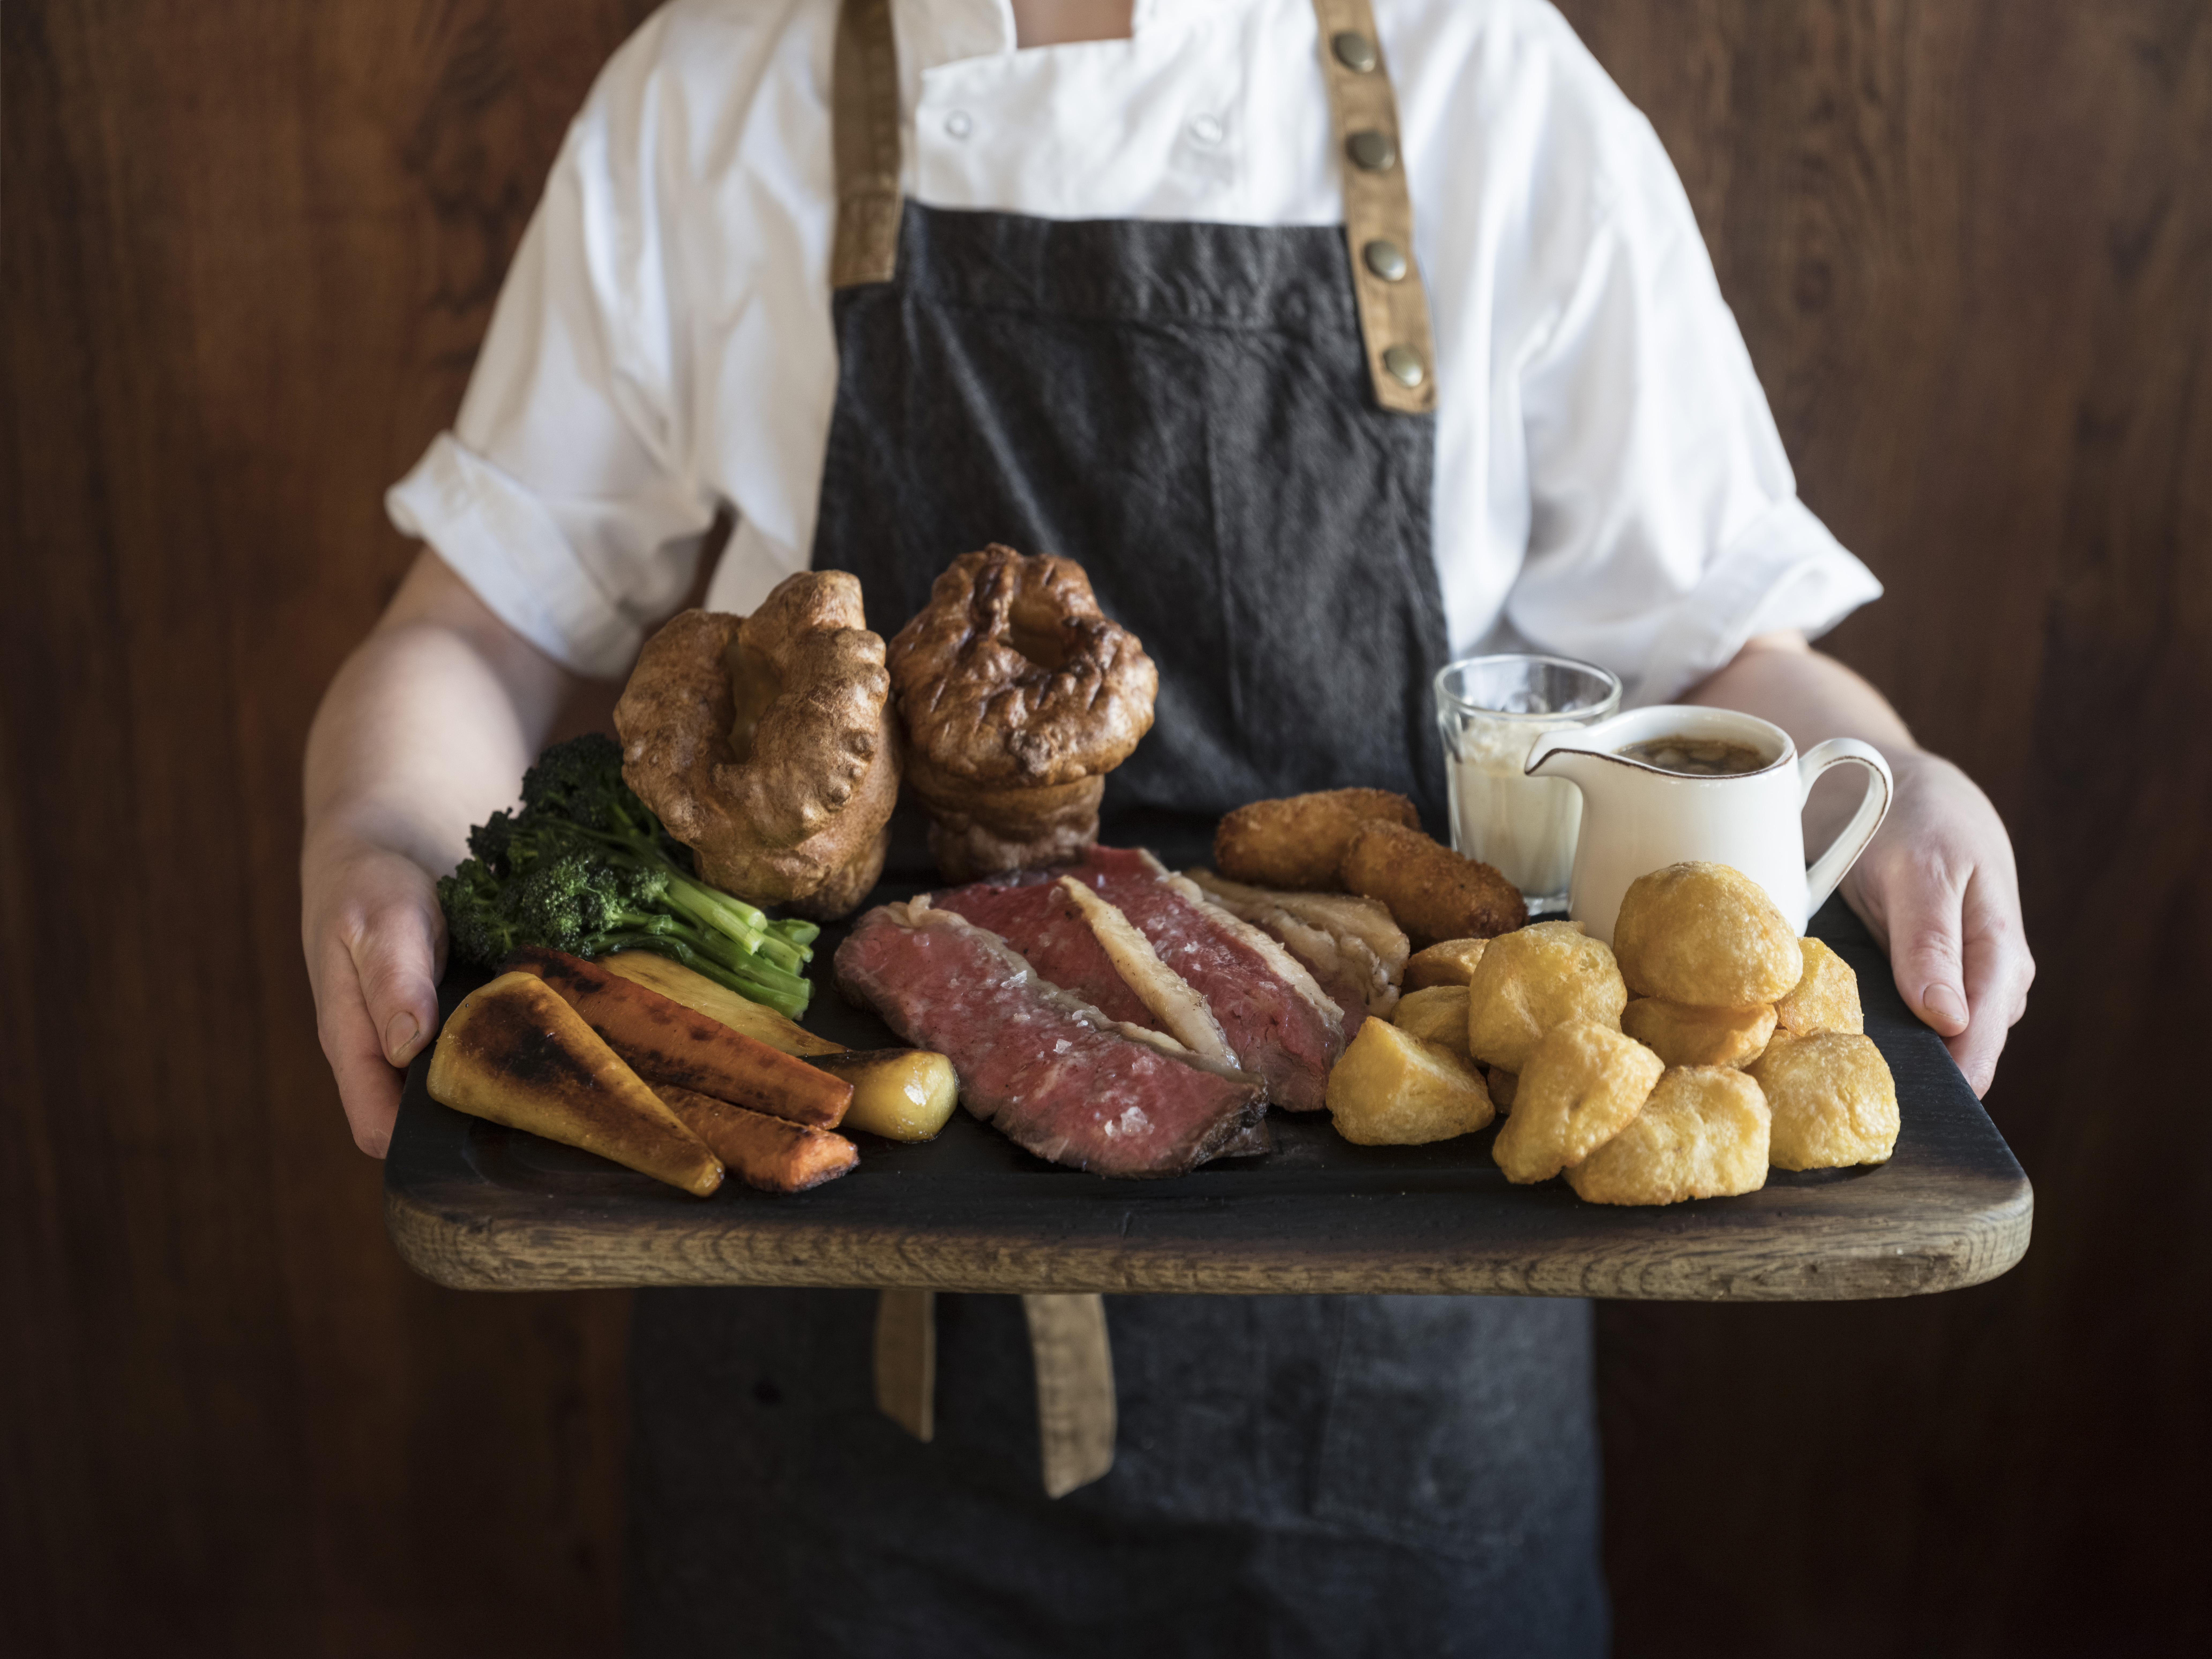 Michelin-starred pub, Harwood Arms' famous Sunday roast is now being offered for home delivery